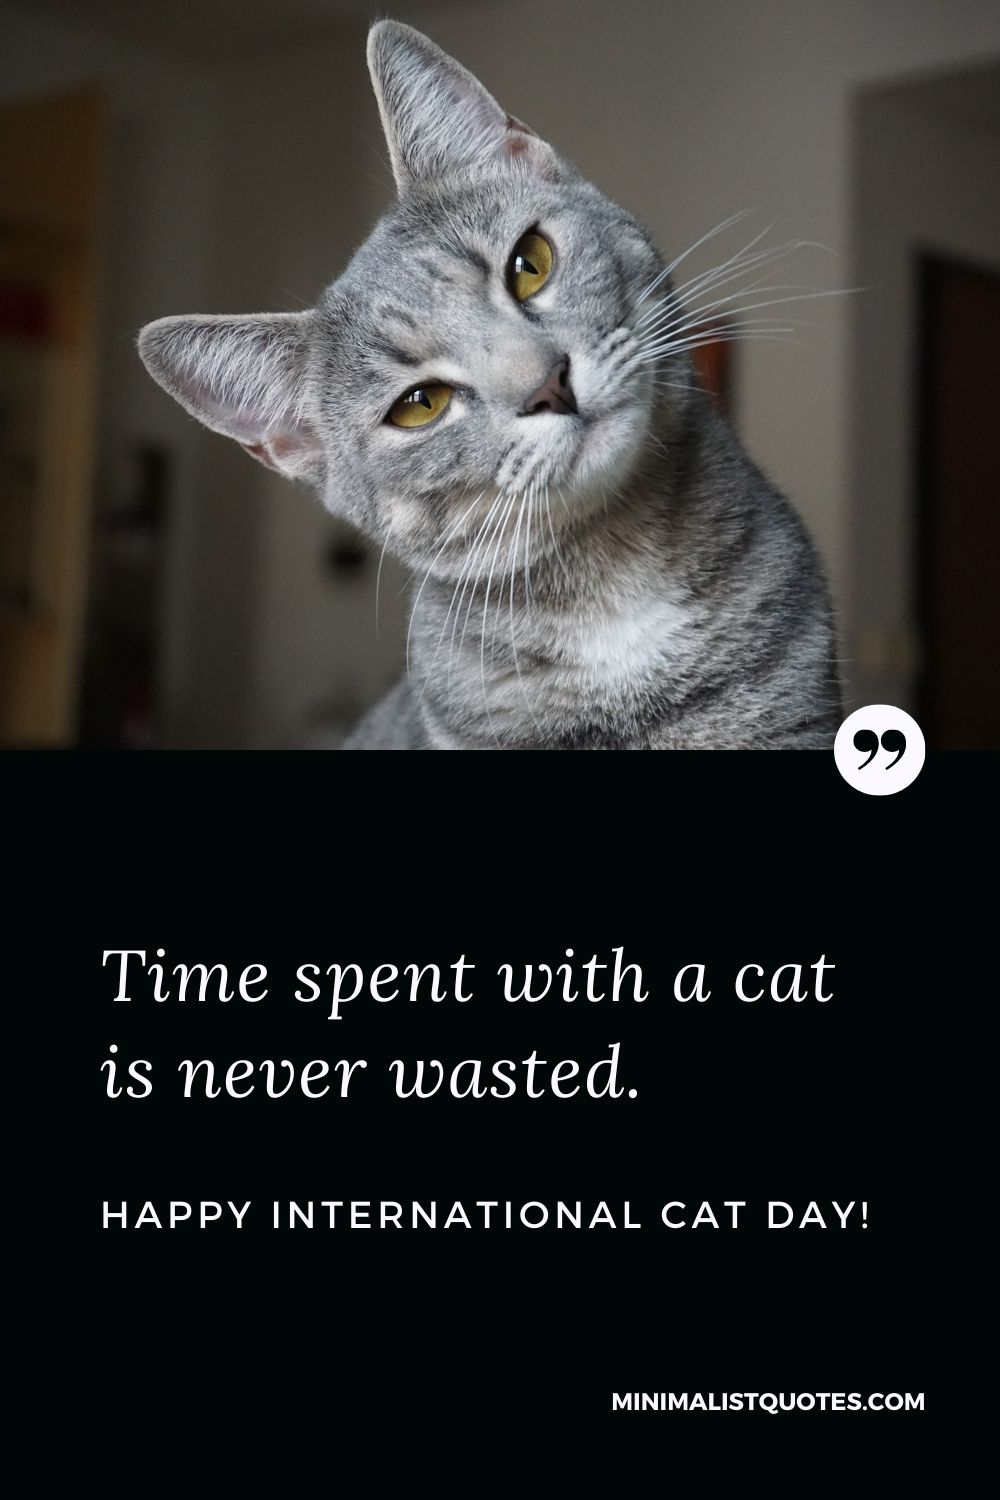 International Cat Day Quote, Wish & Message With Image: Time spent with a cat is never wasted. Happy International Cat Day!